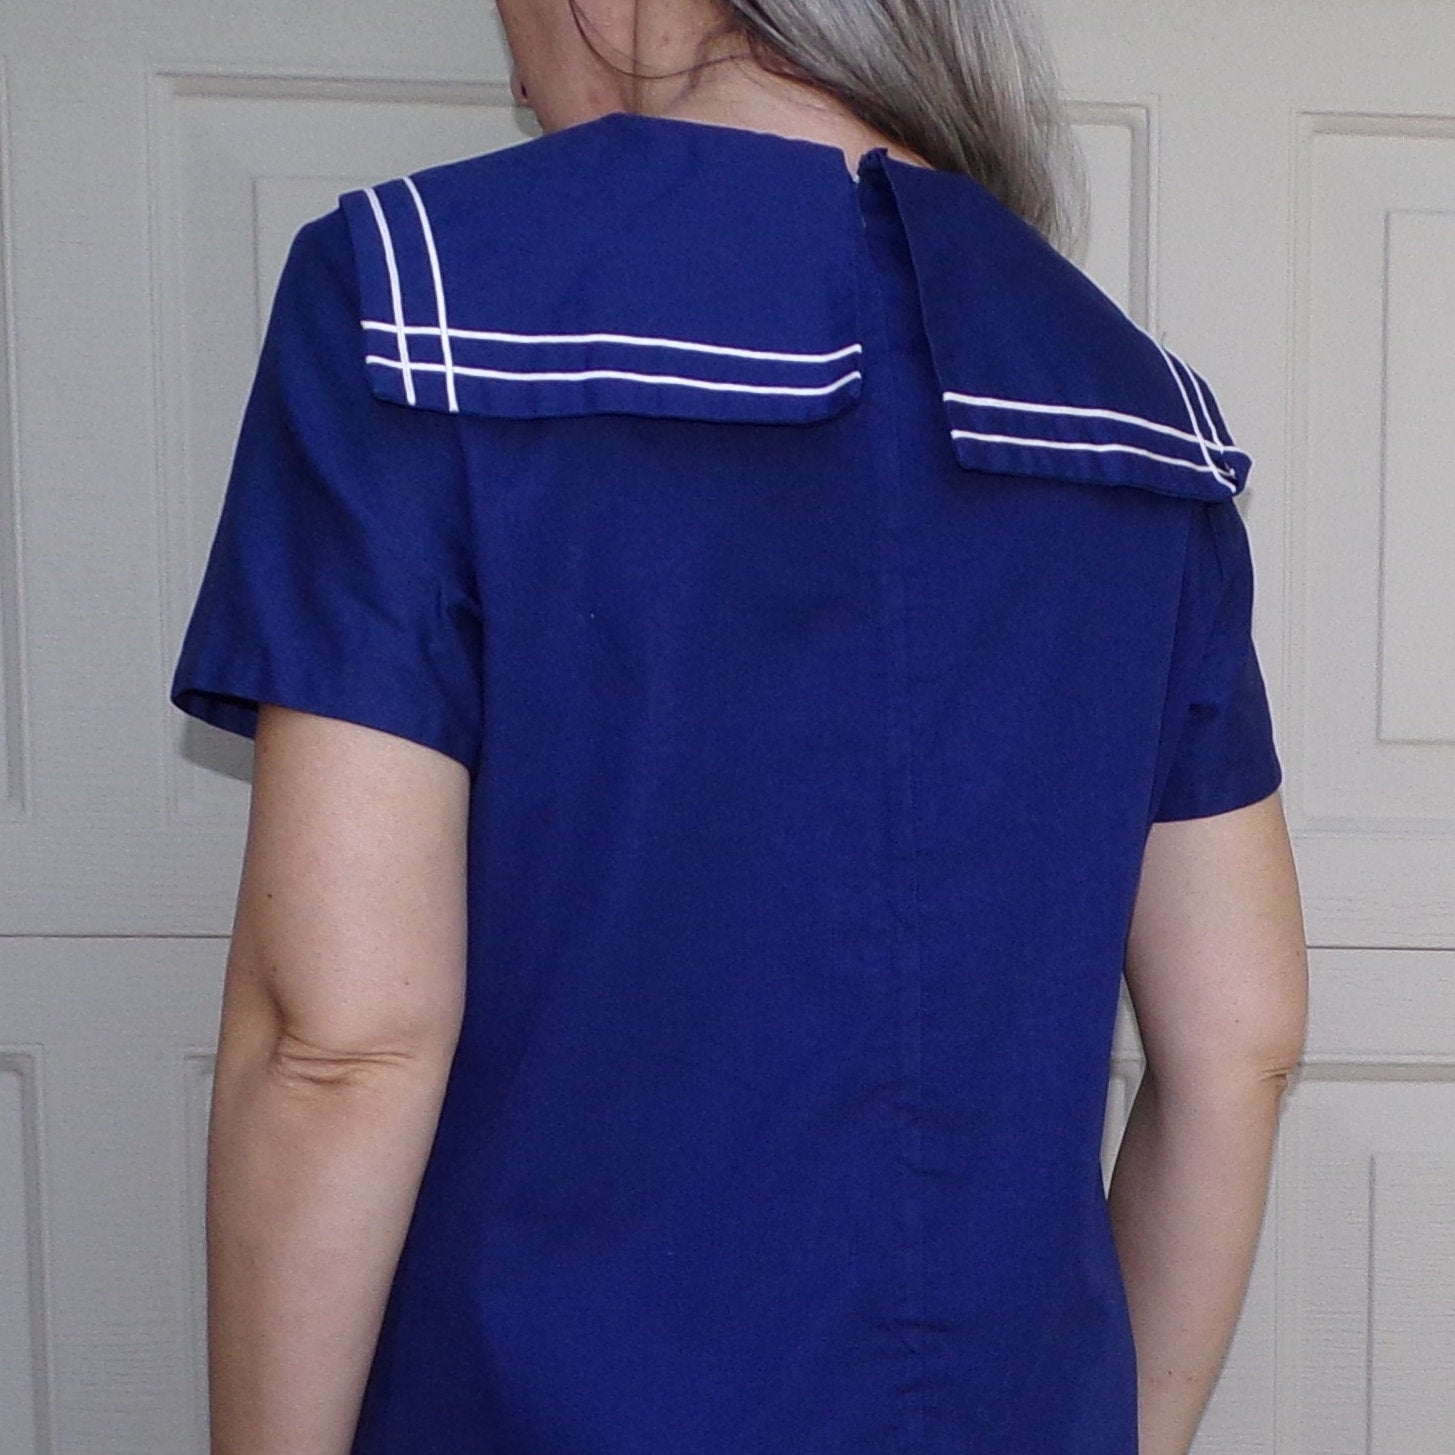 1960's NAUTICAL SAILOR DRESS 60's shift middy S M (G3)